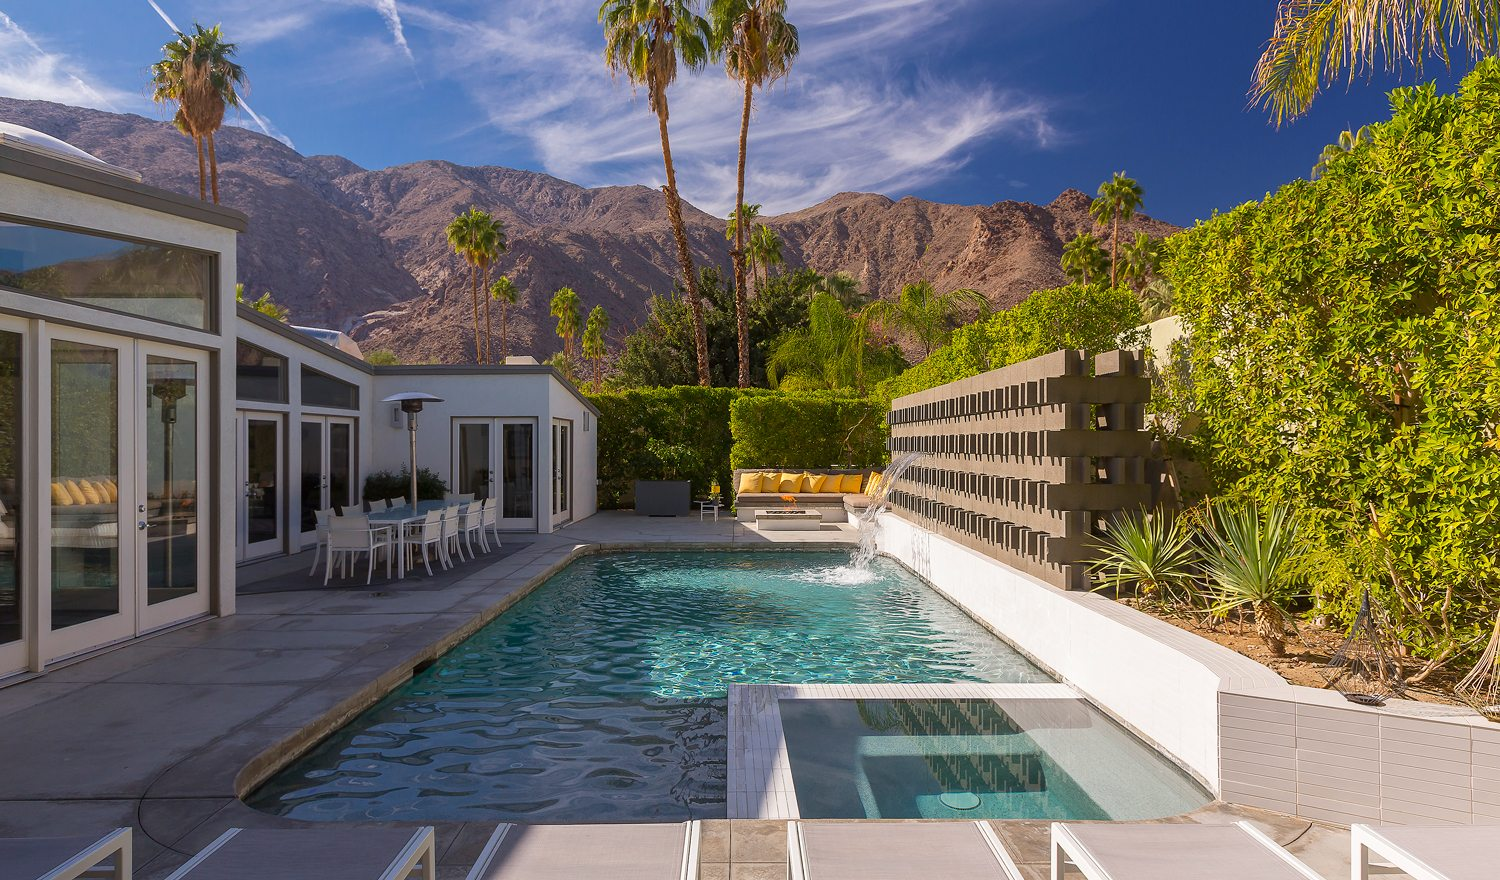 Home of the week mid century modern in palm springs for New modern homes palm springs